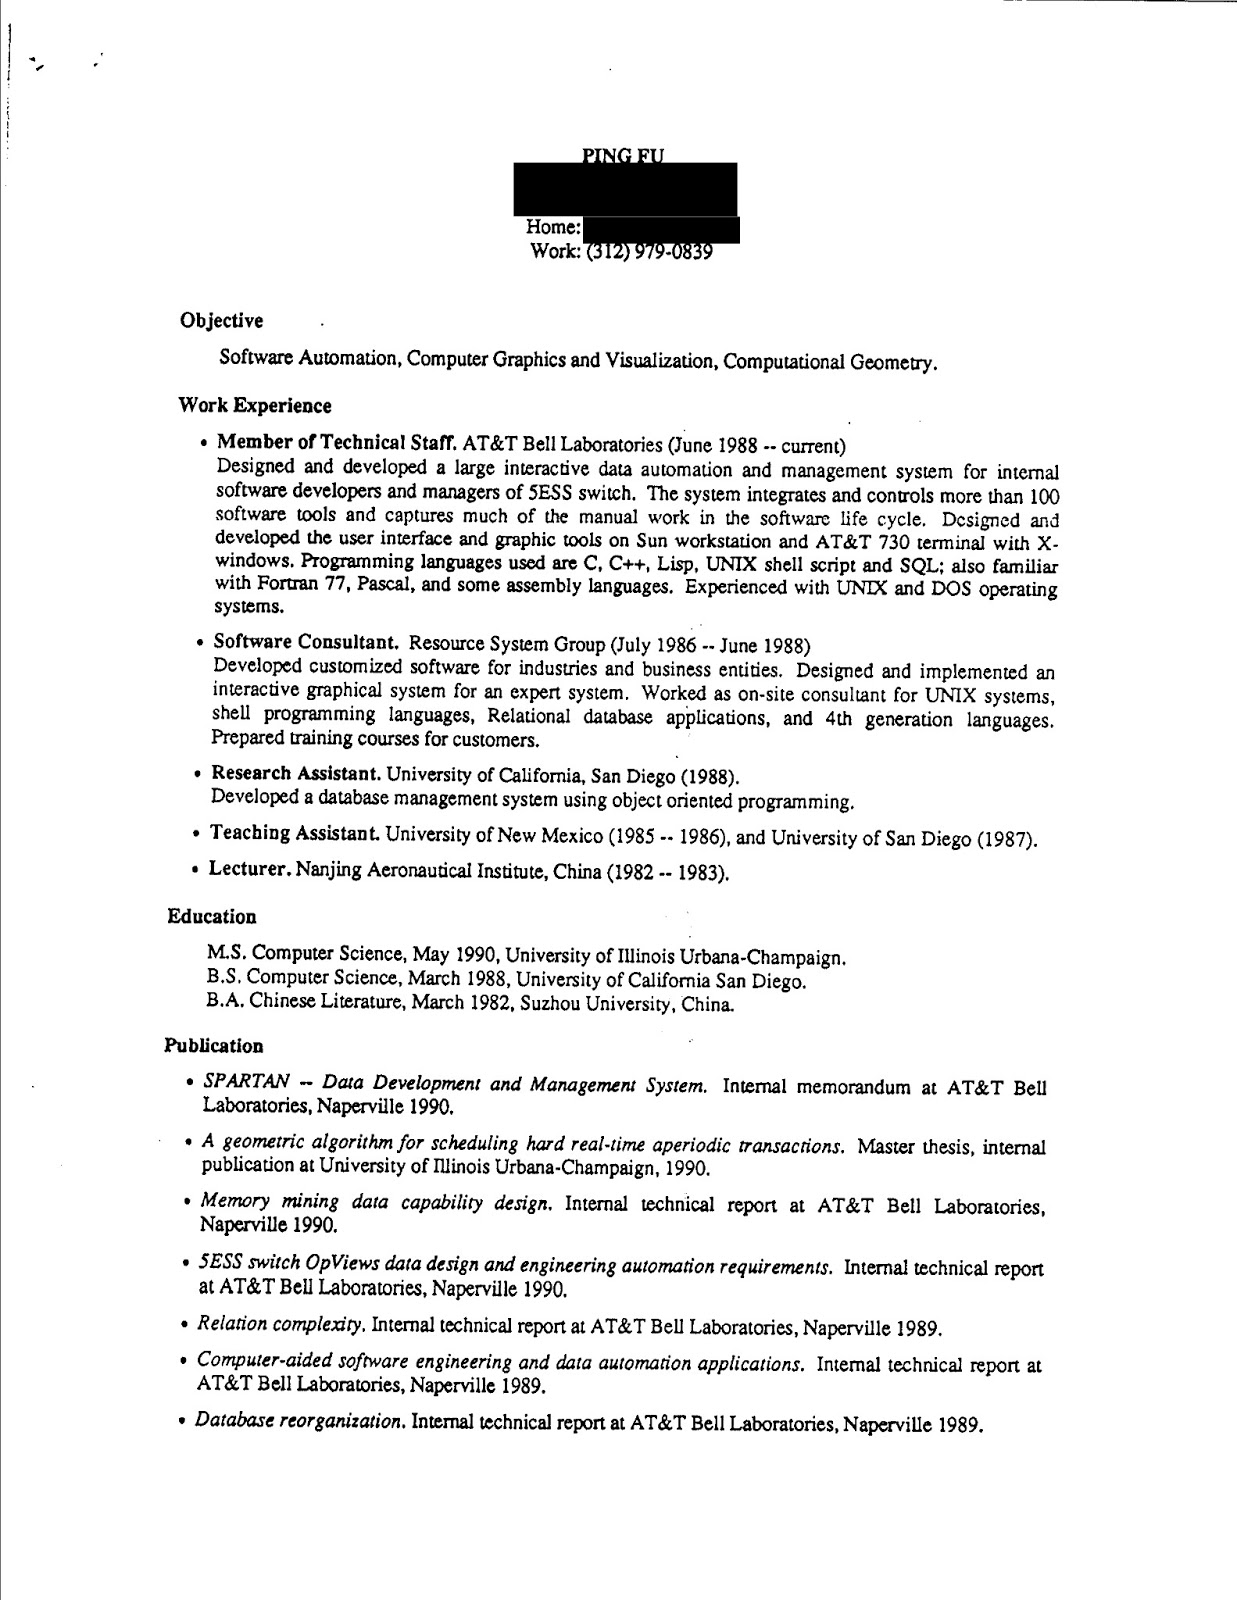 Document: Fu Ping's Resume at University of Illinois